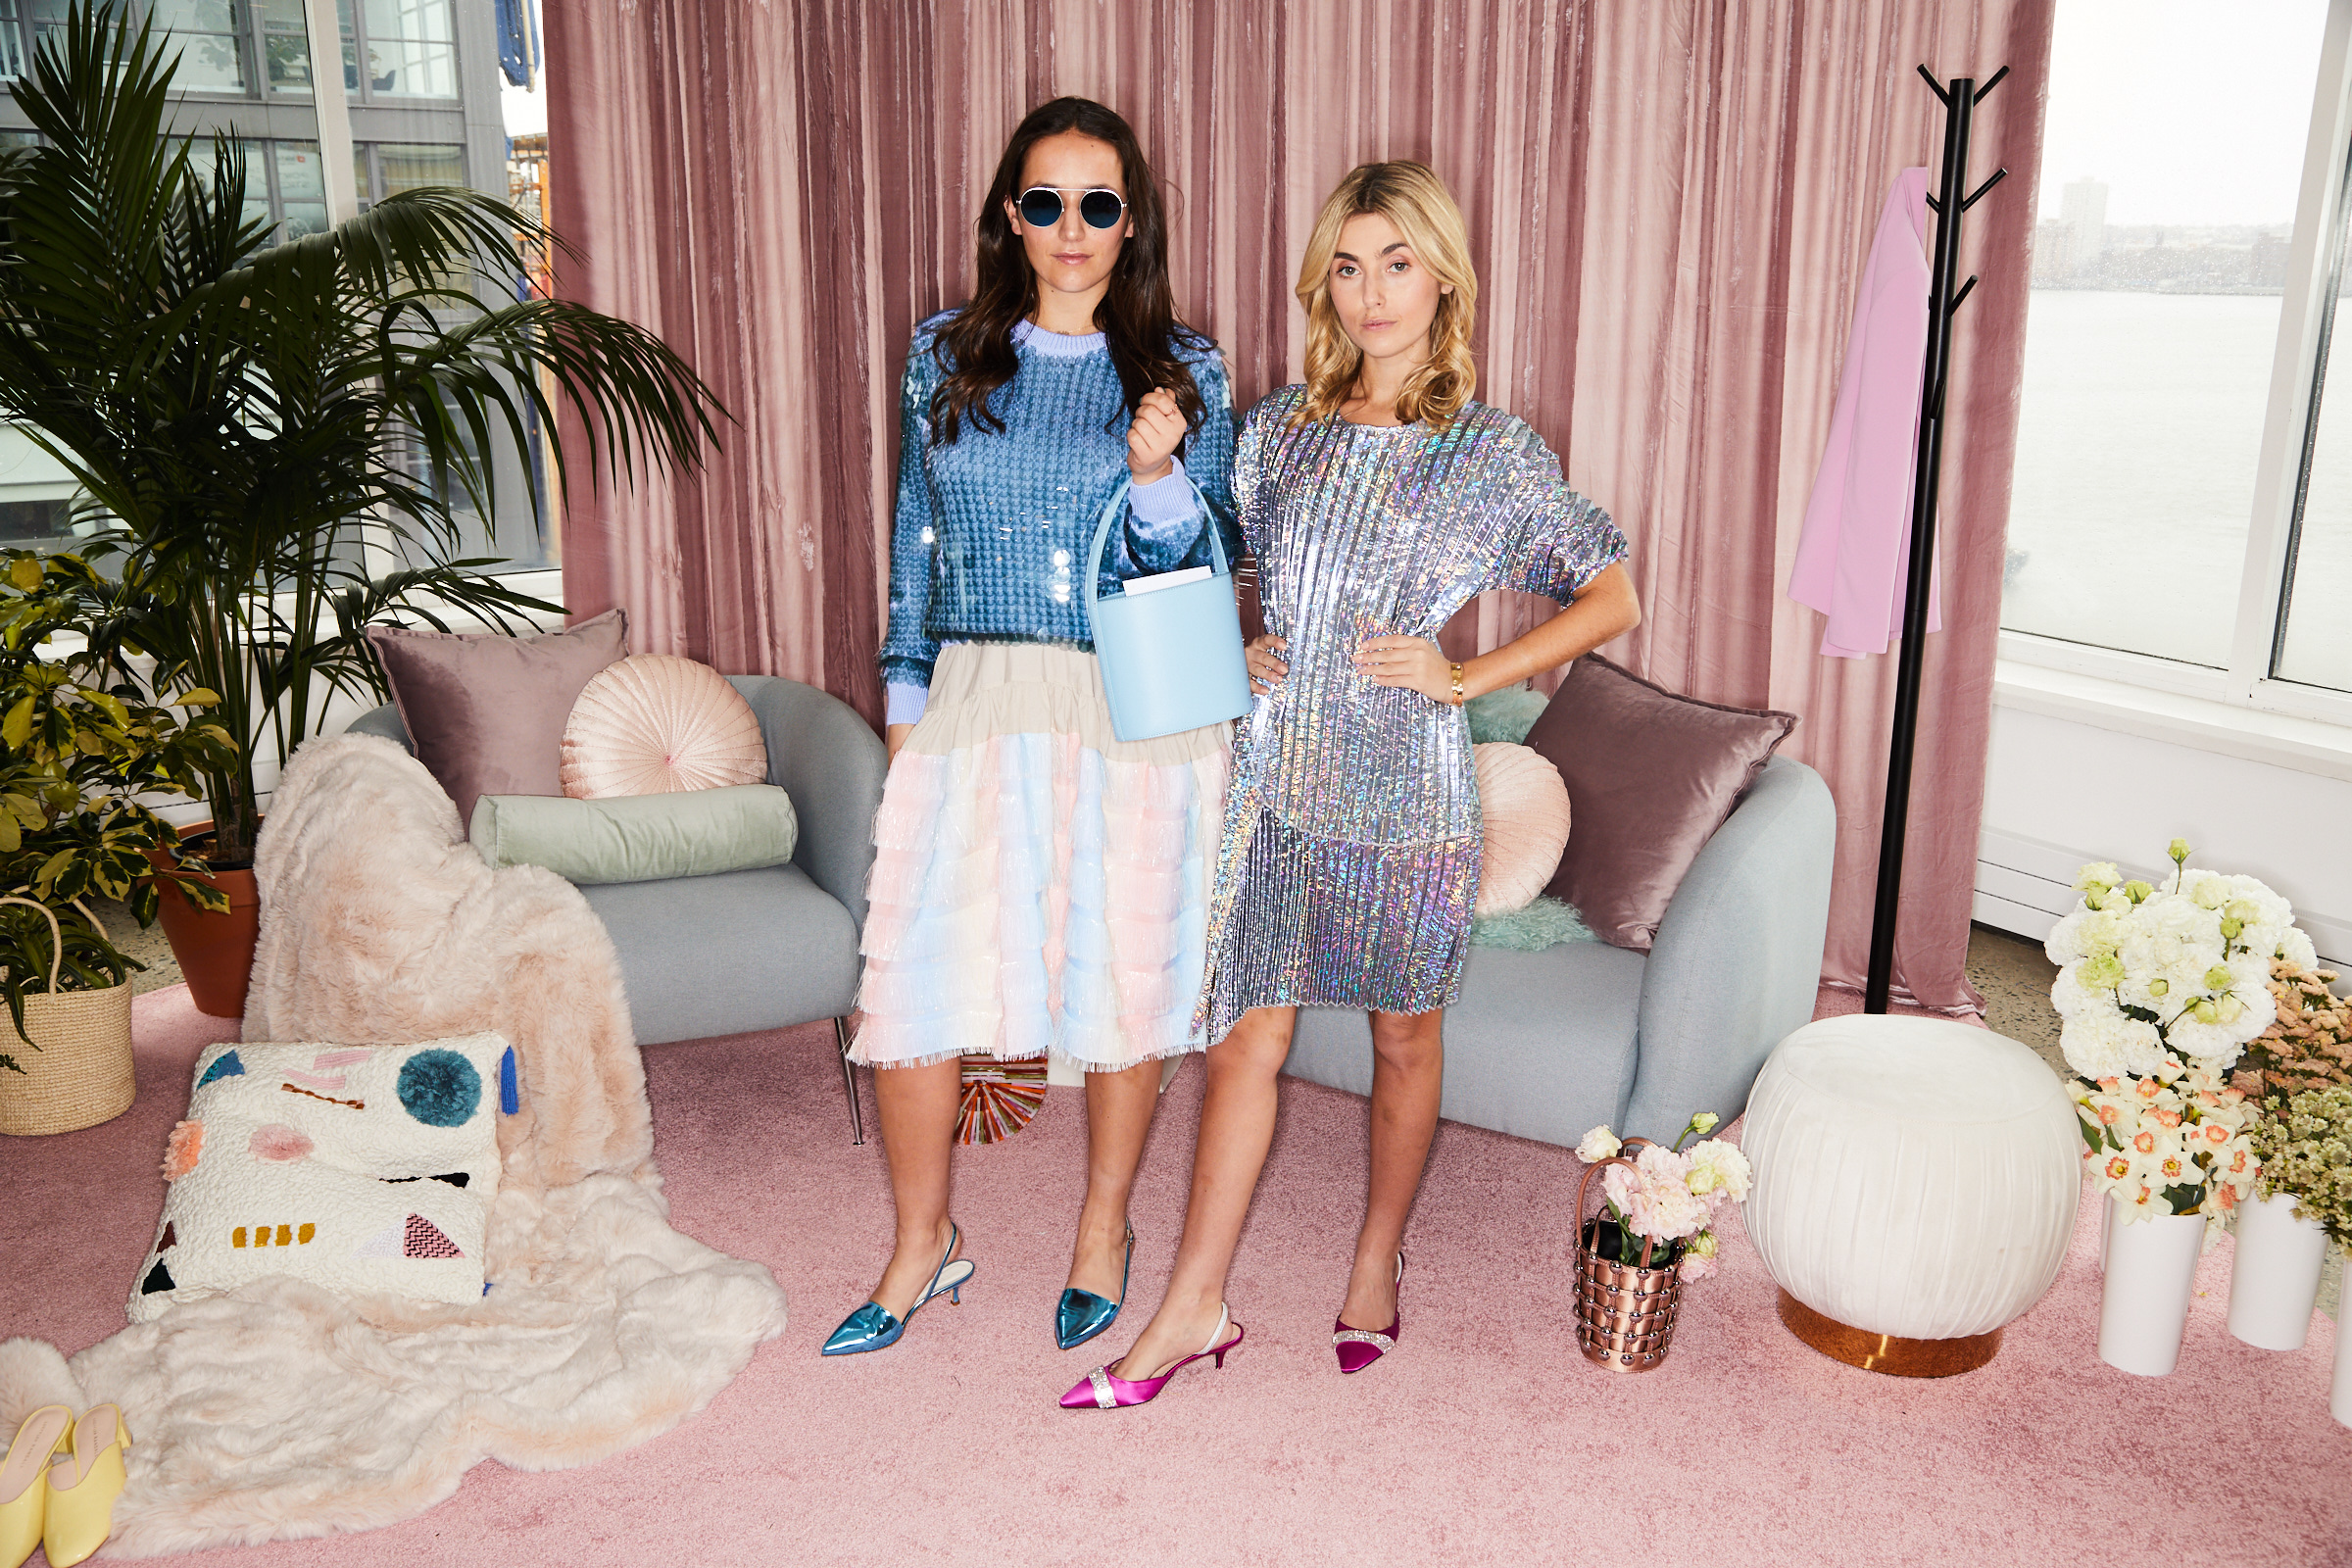 SOPHIE AND CHARLOTTE BICKLEY YIN 2MY YANG SHOPBOP STYLEHIGH EVENT NYC SISTER FASHION BLOGGERS 1